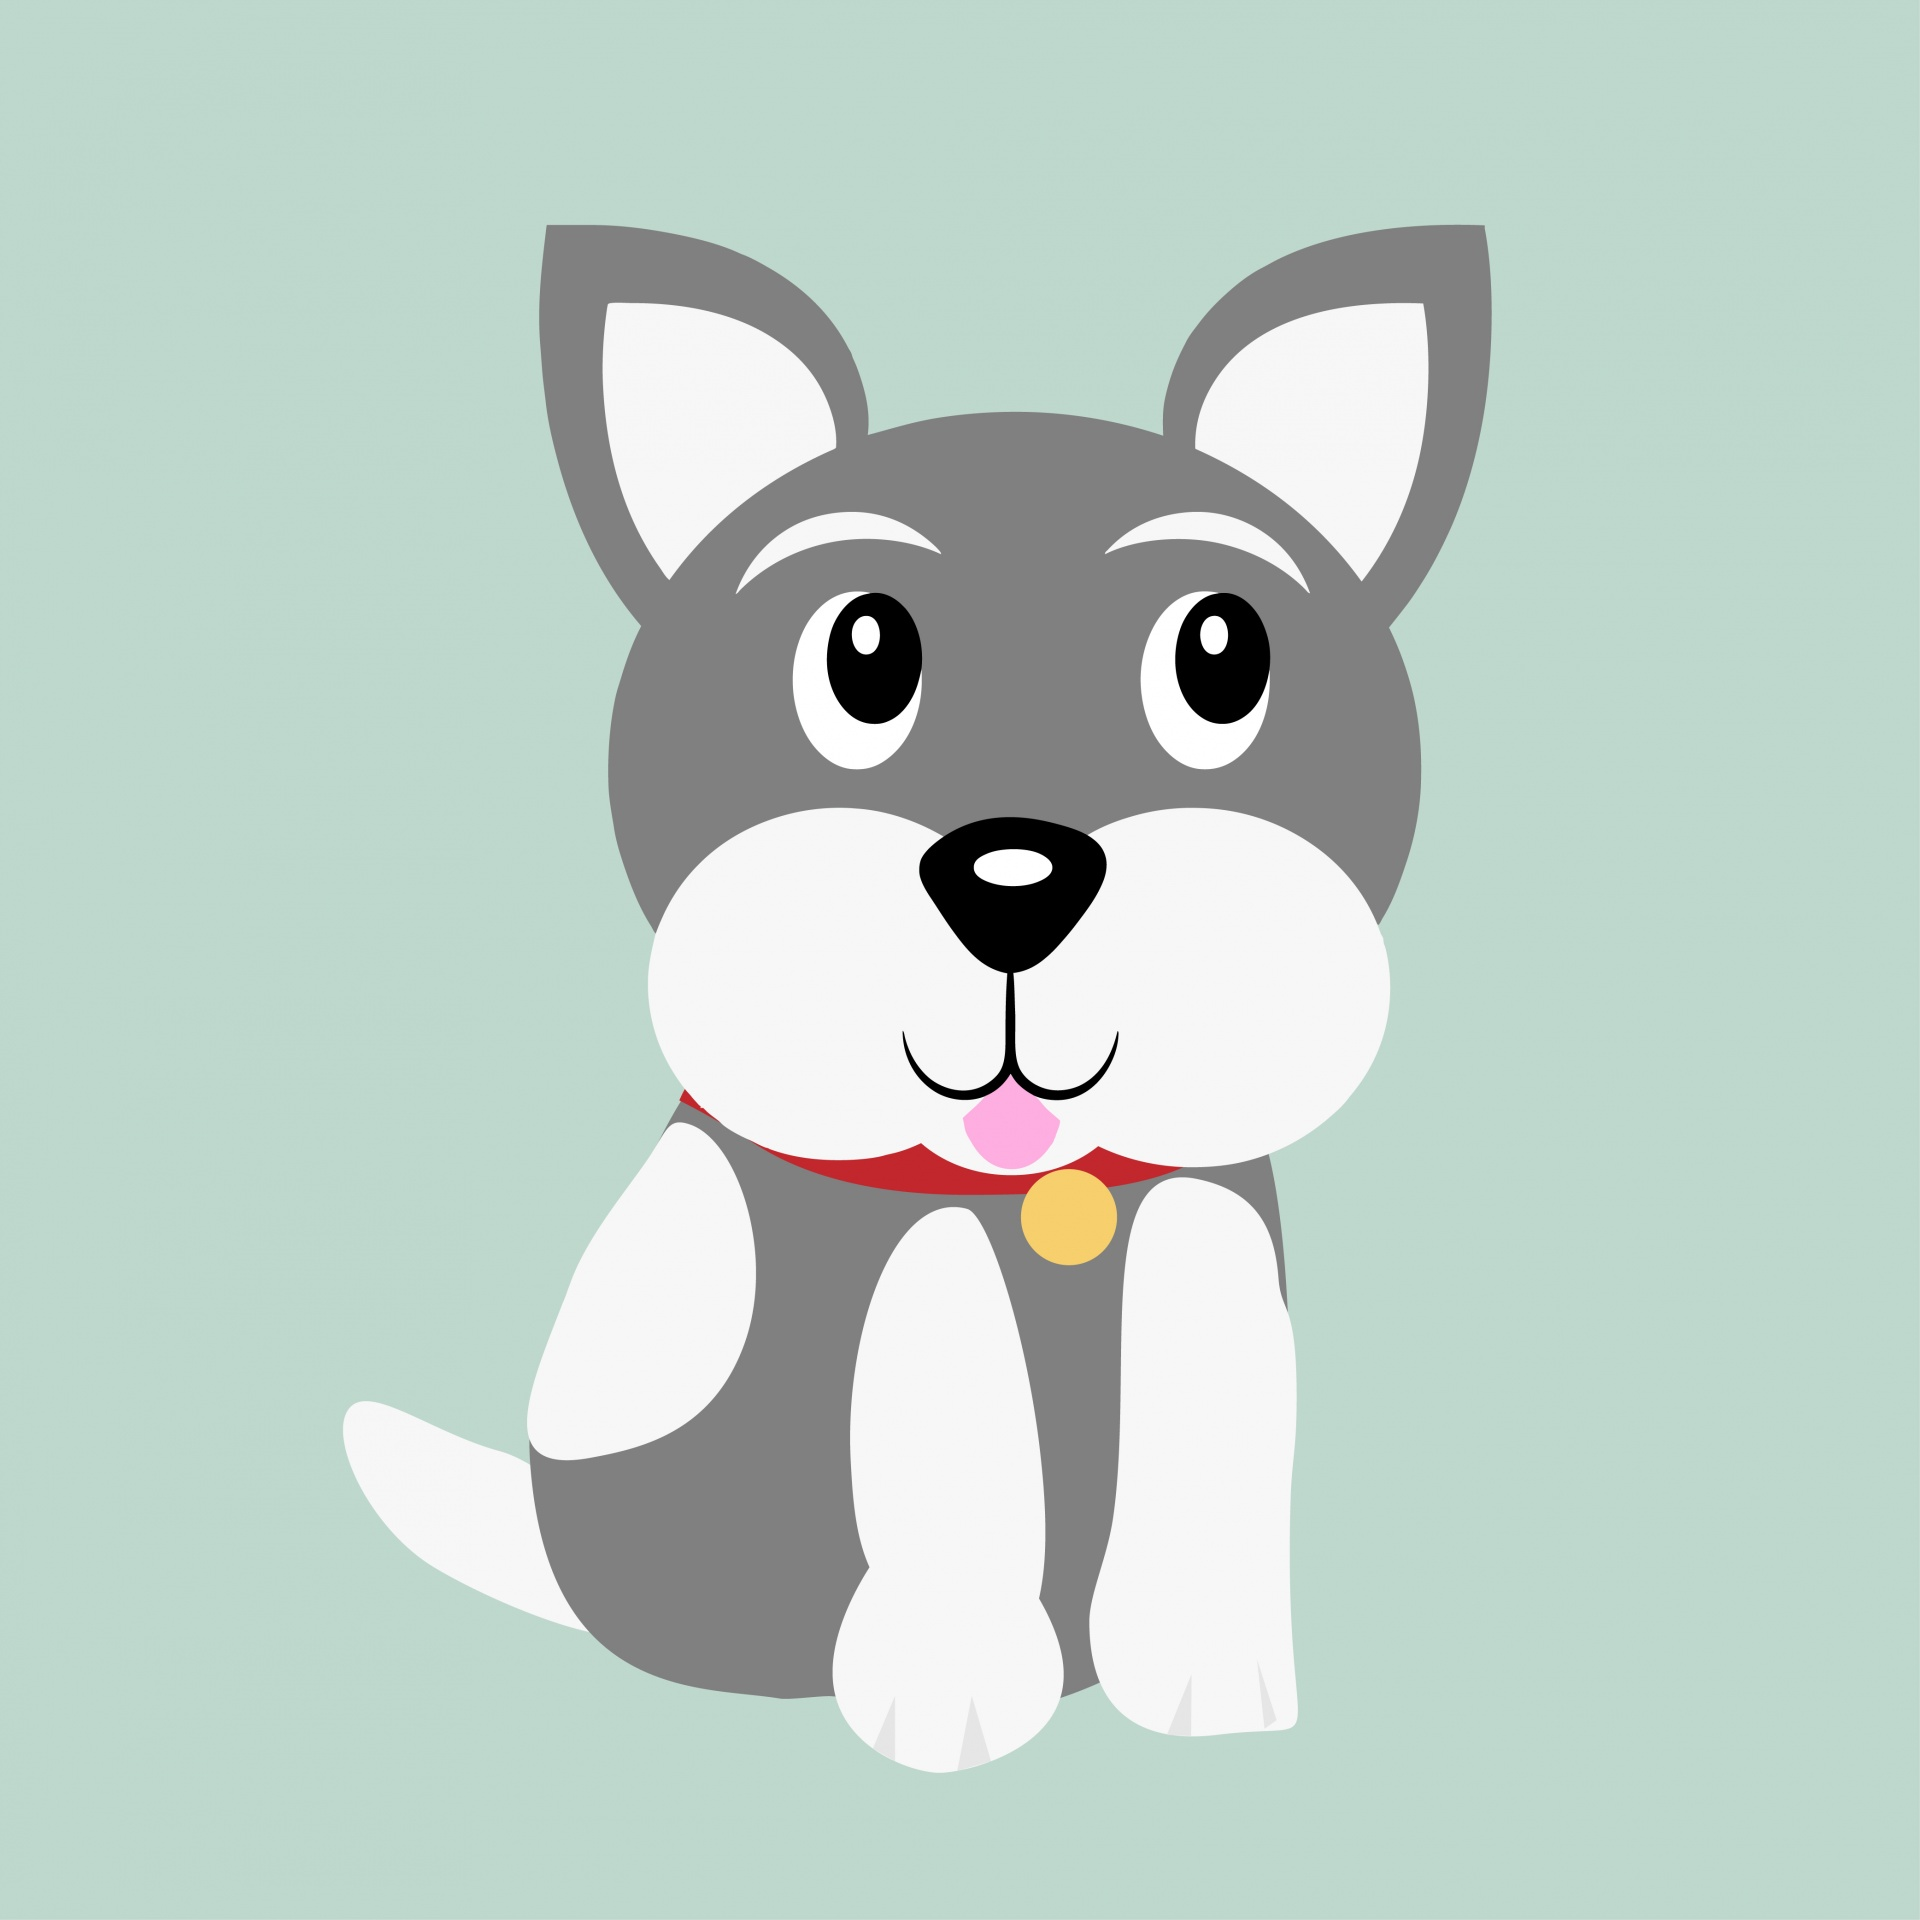 Dog Cartoon Illustration Puppy Cute Free Image From Needpix Com